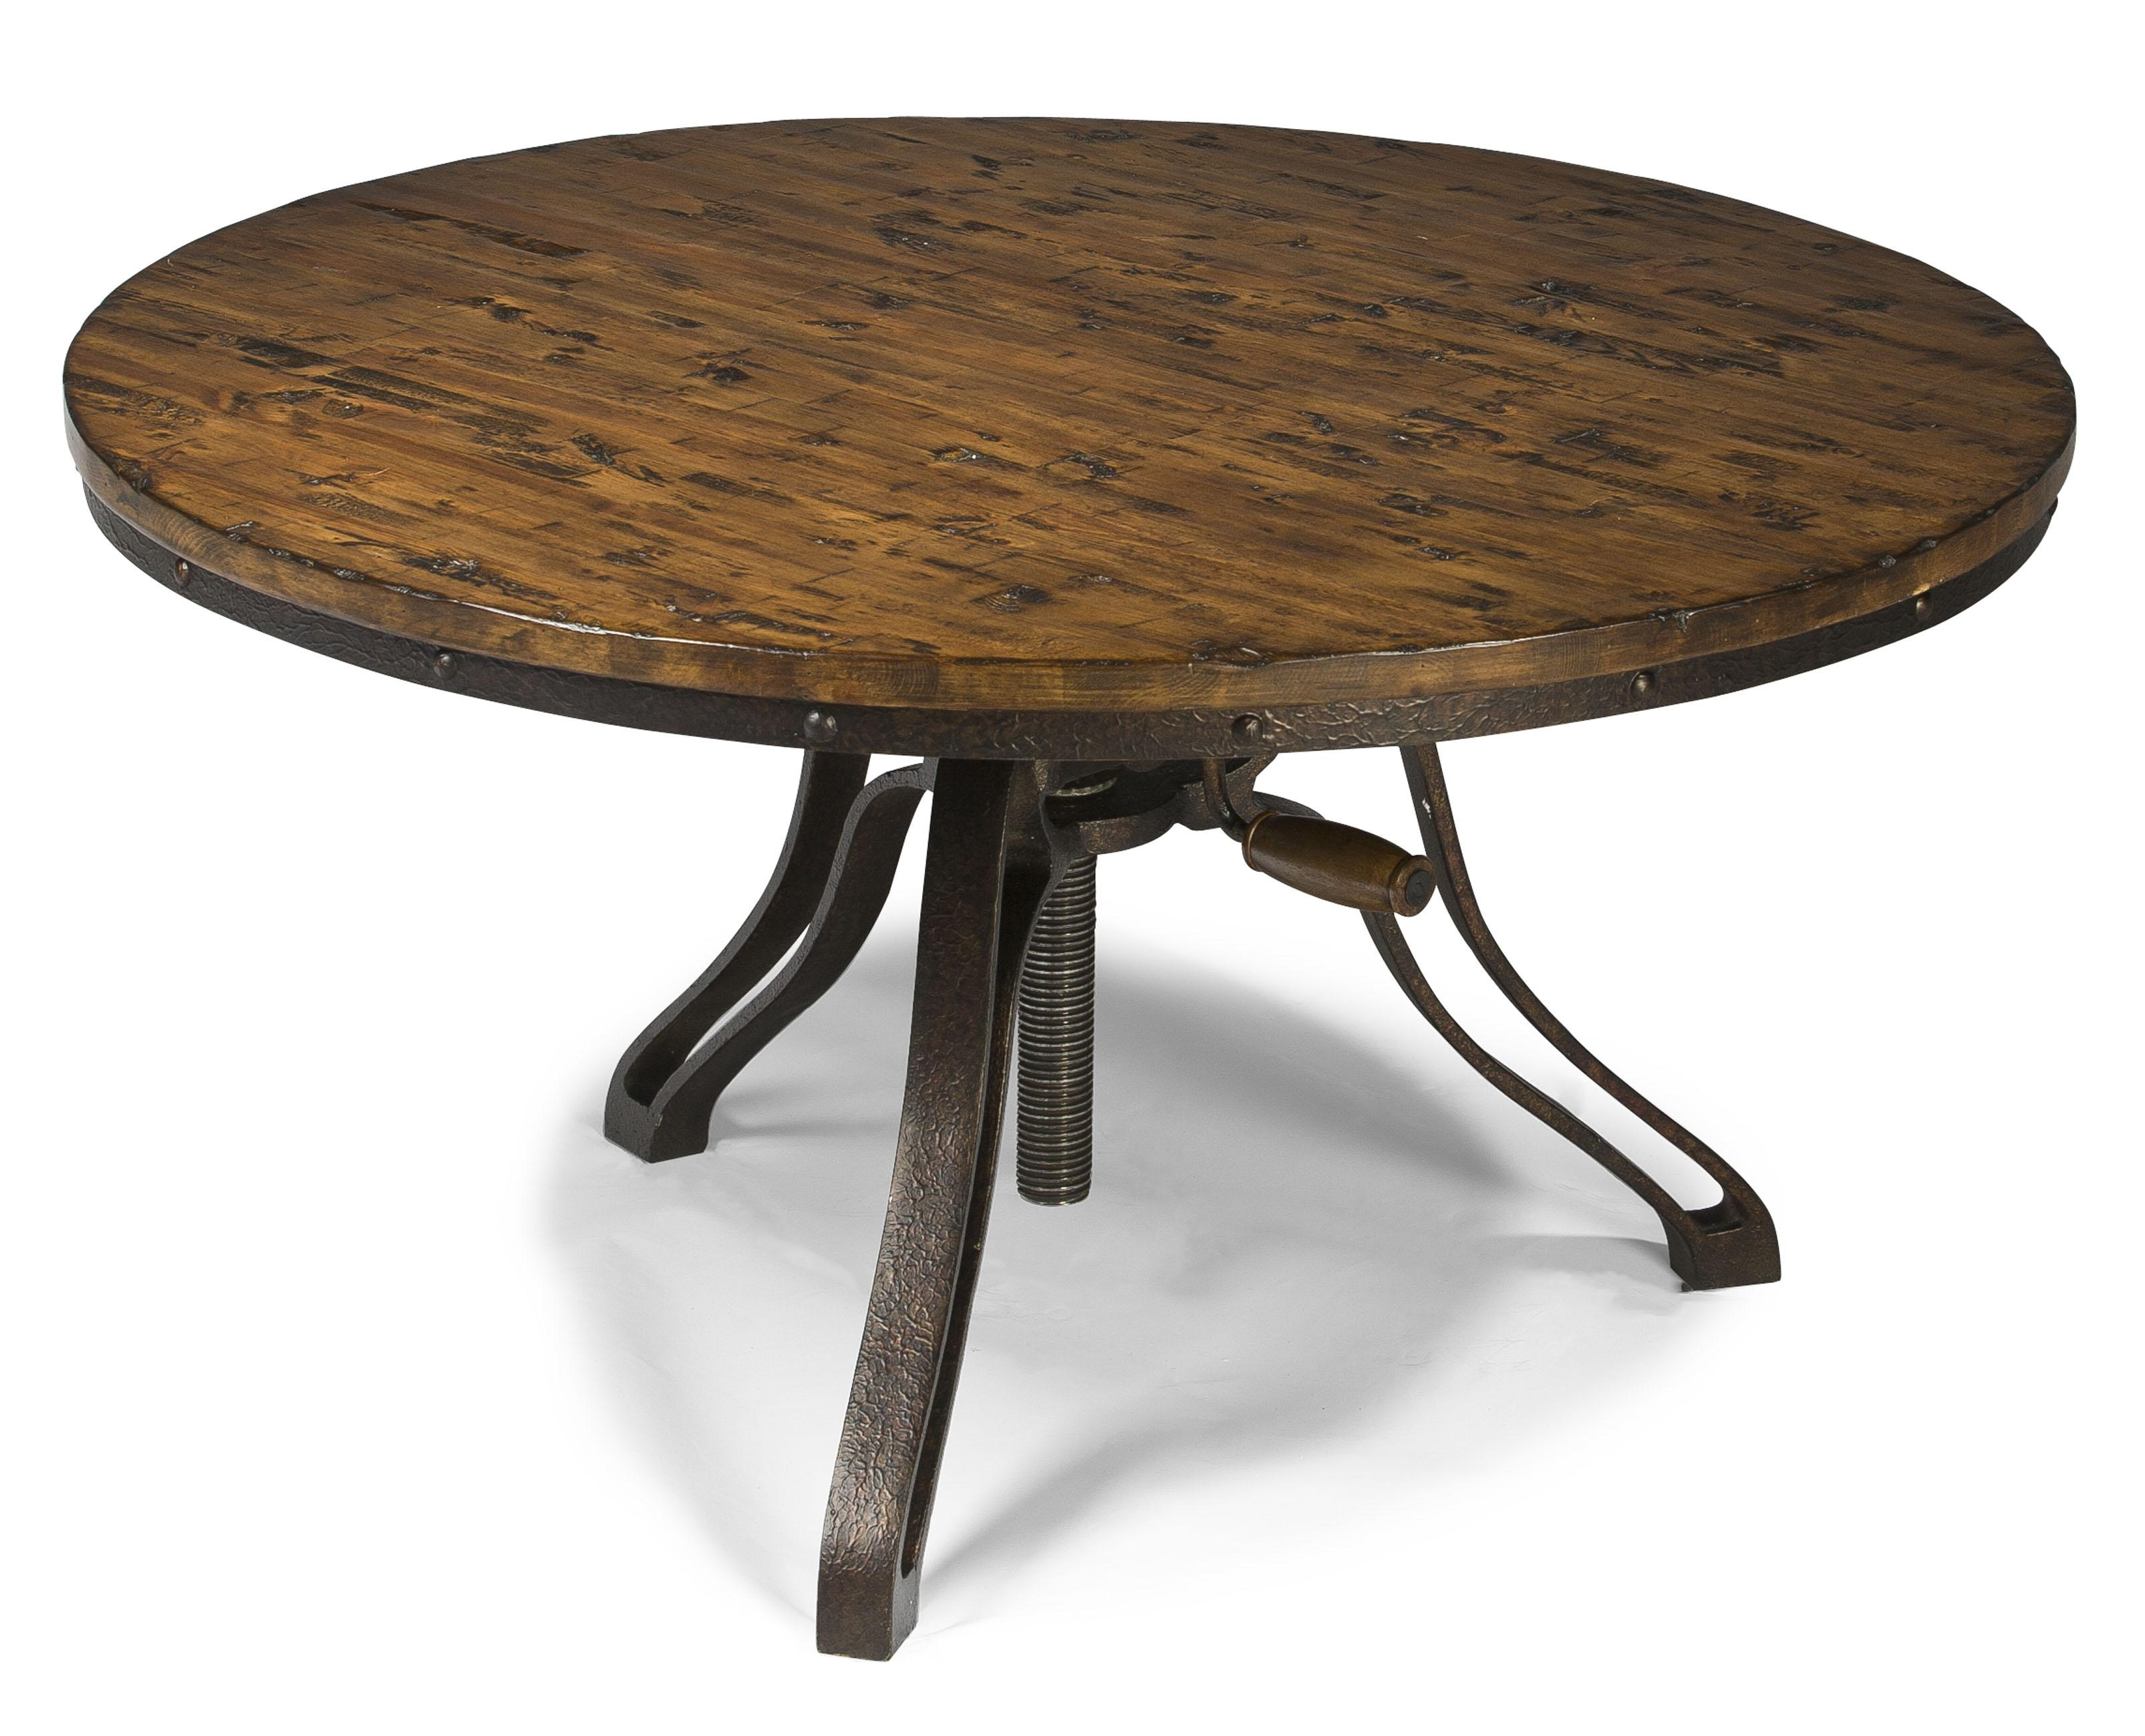 Industrial style round cocktail table with adjustable height What to put on a round coffee table